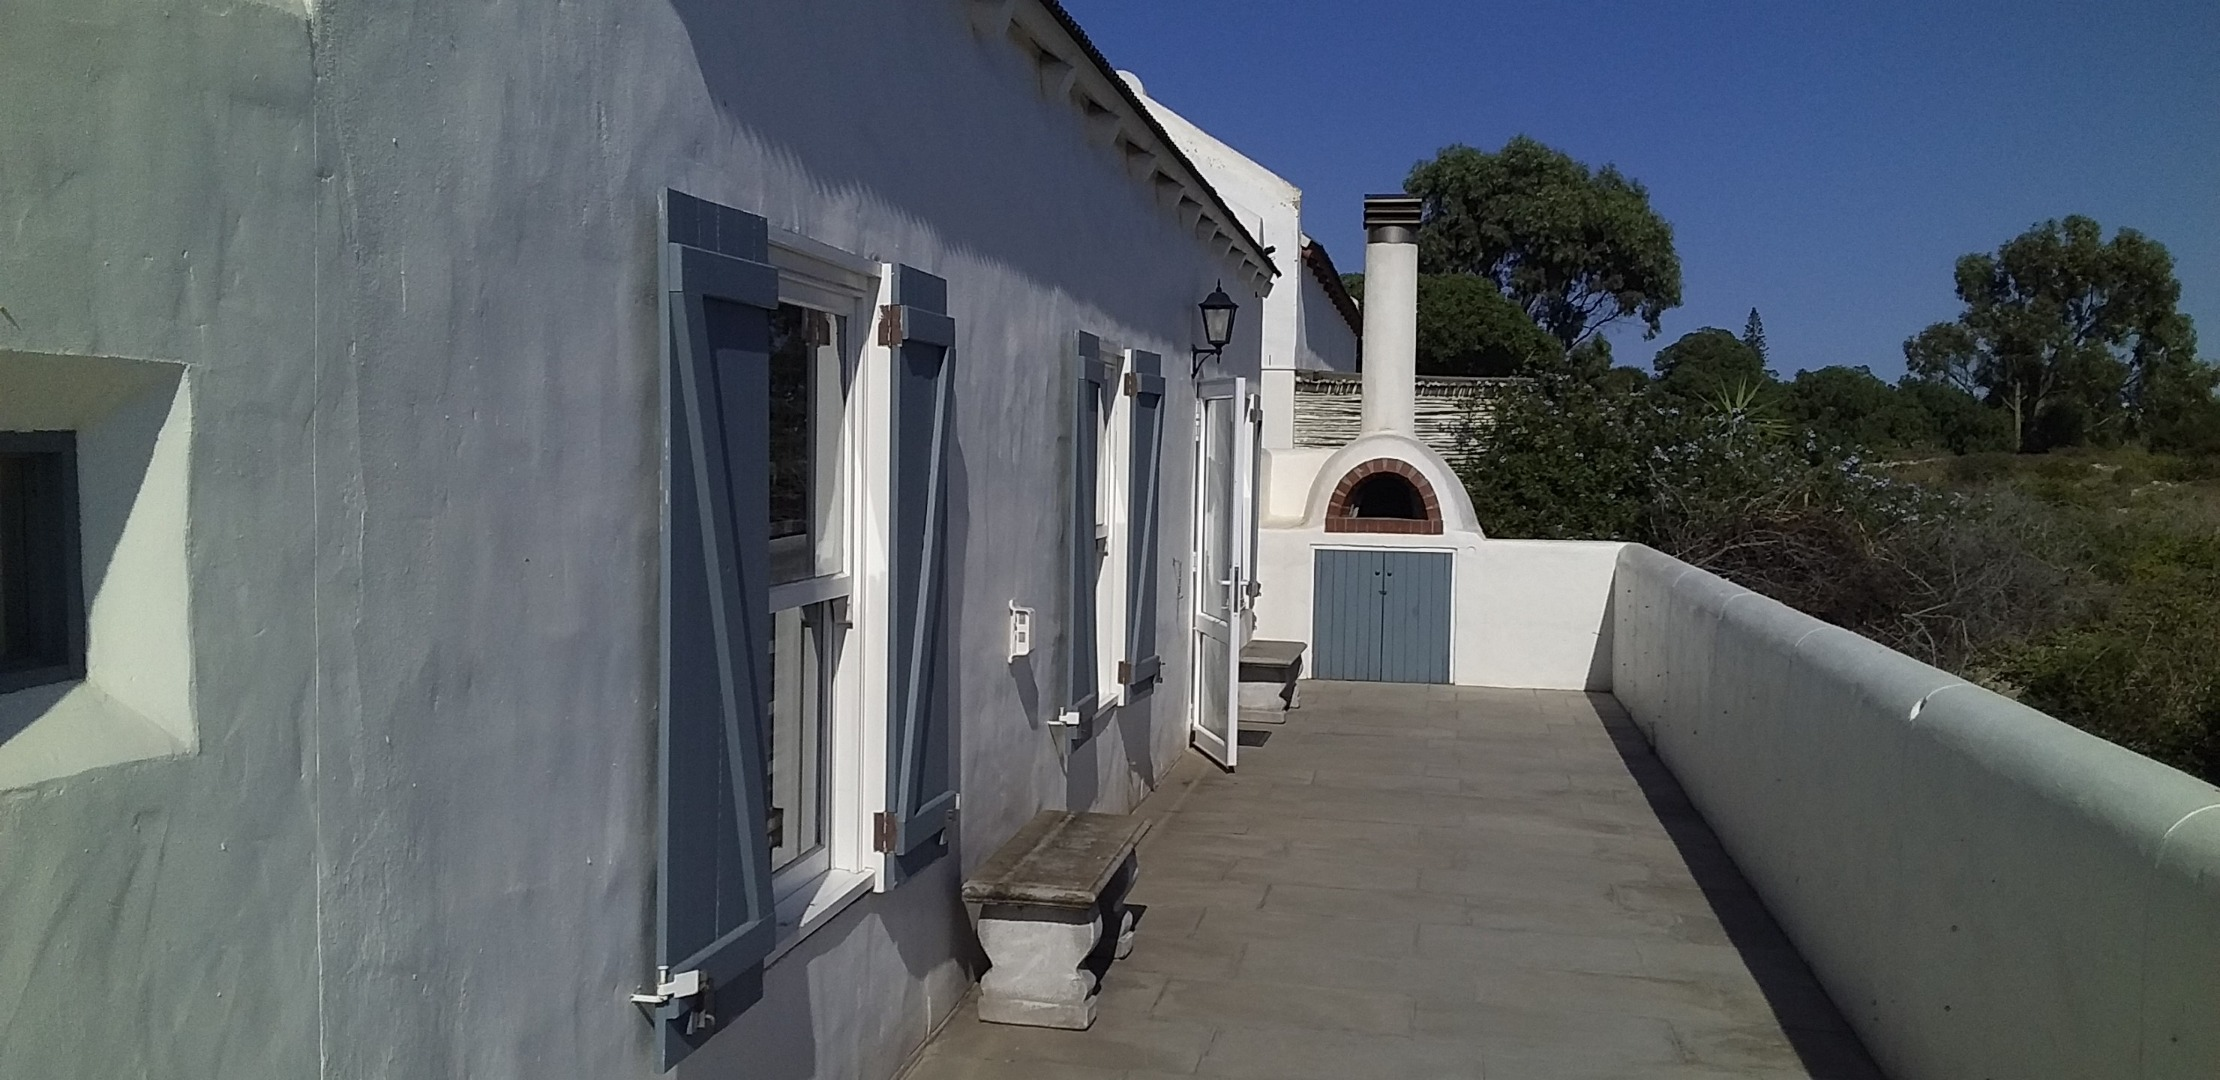 3 Bedroom House For Sale in Paternoster